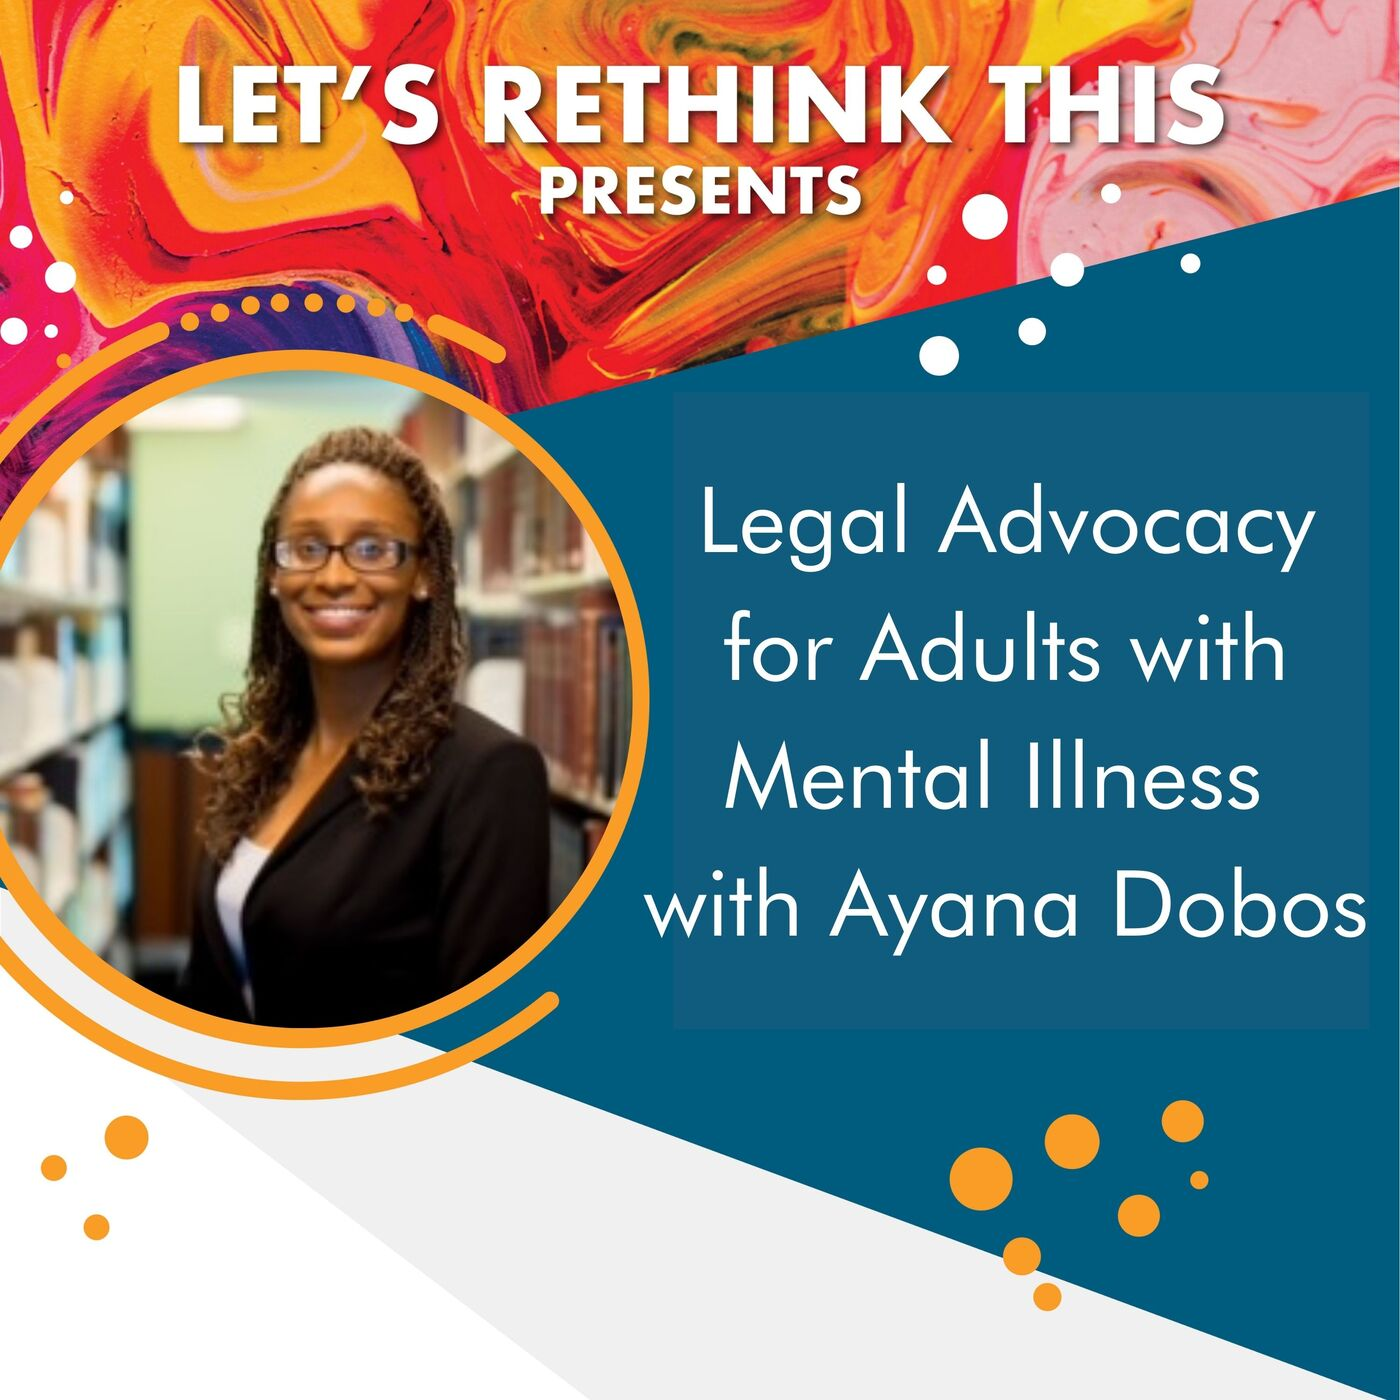 Legal Advocacy for Adults with Mental Illness